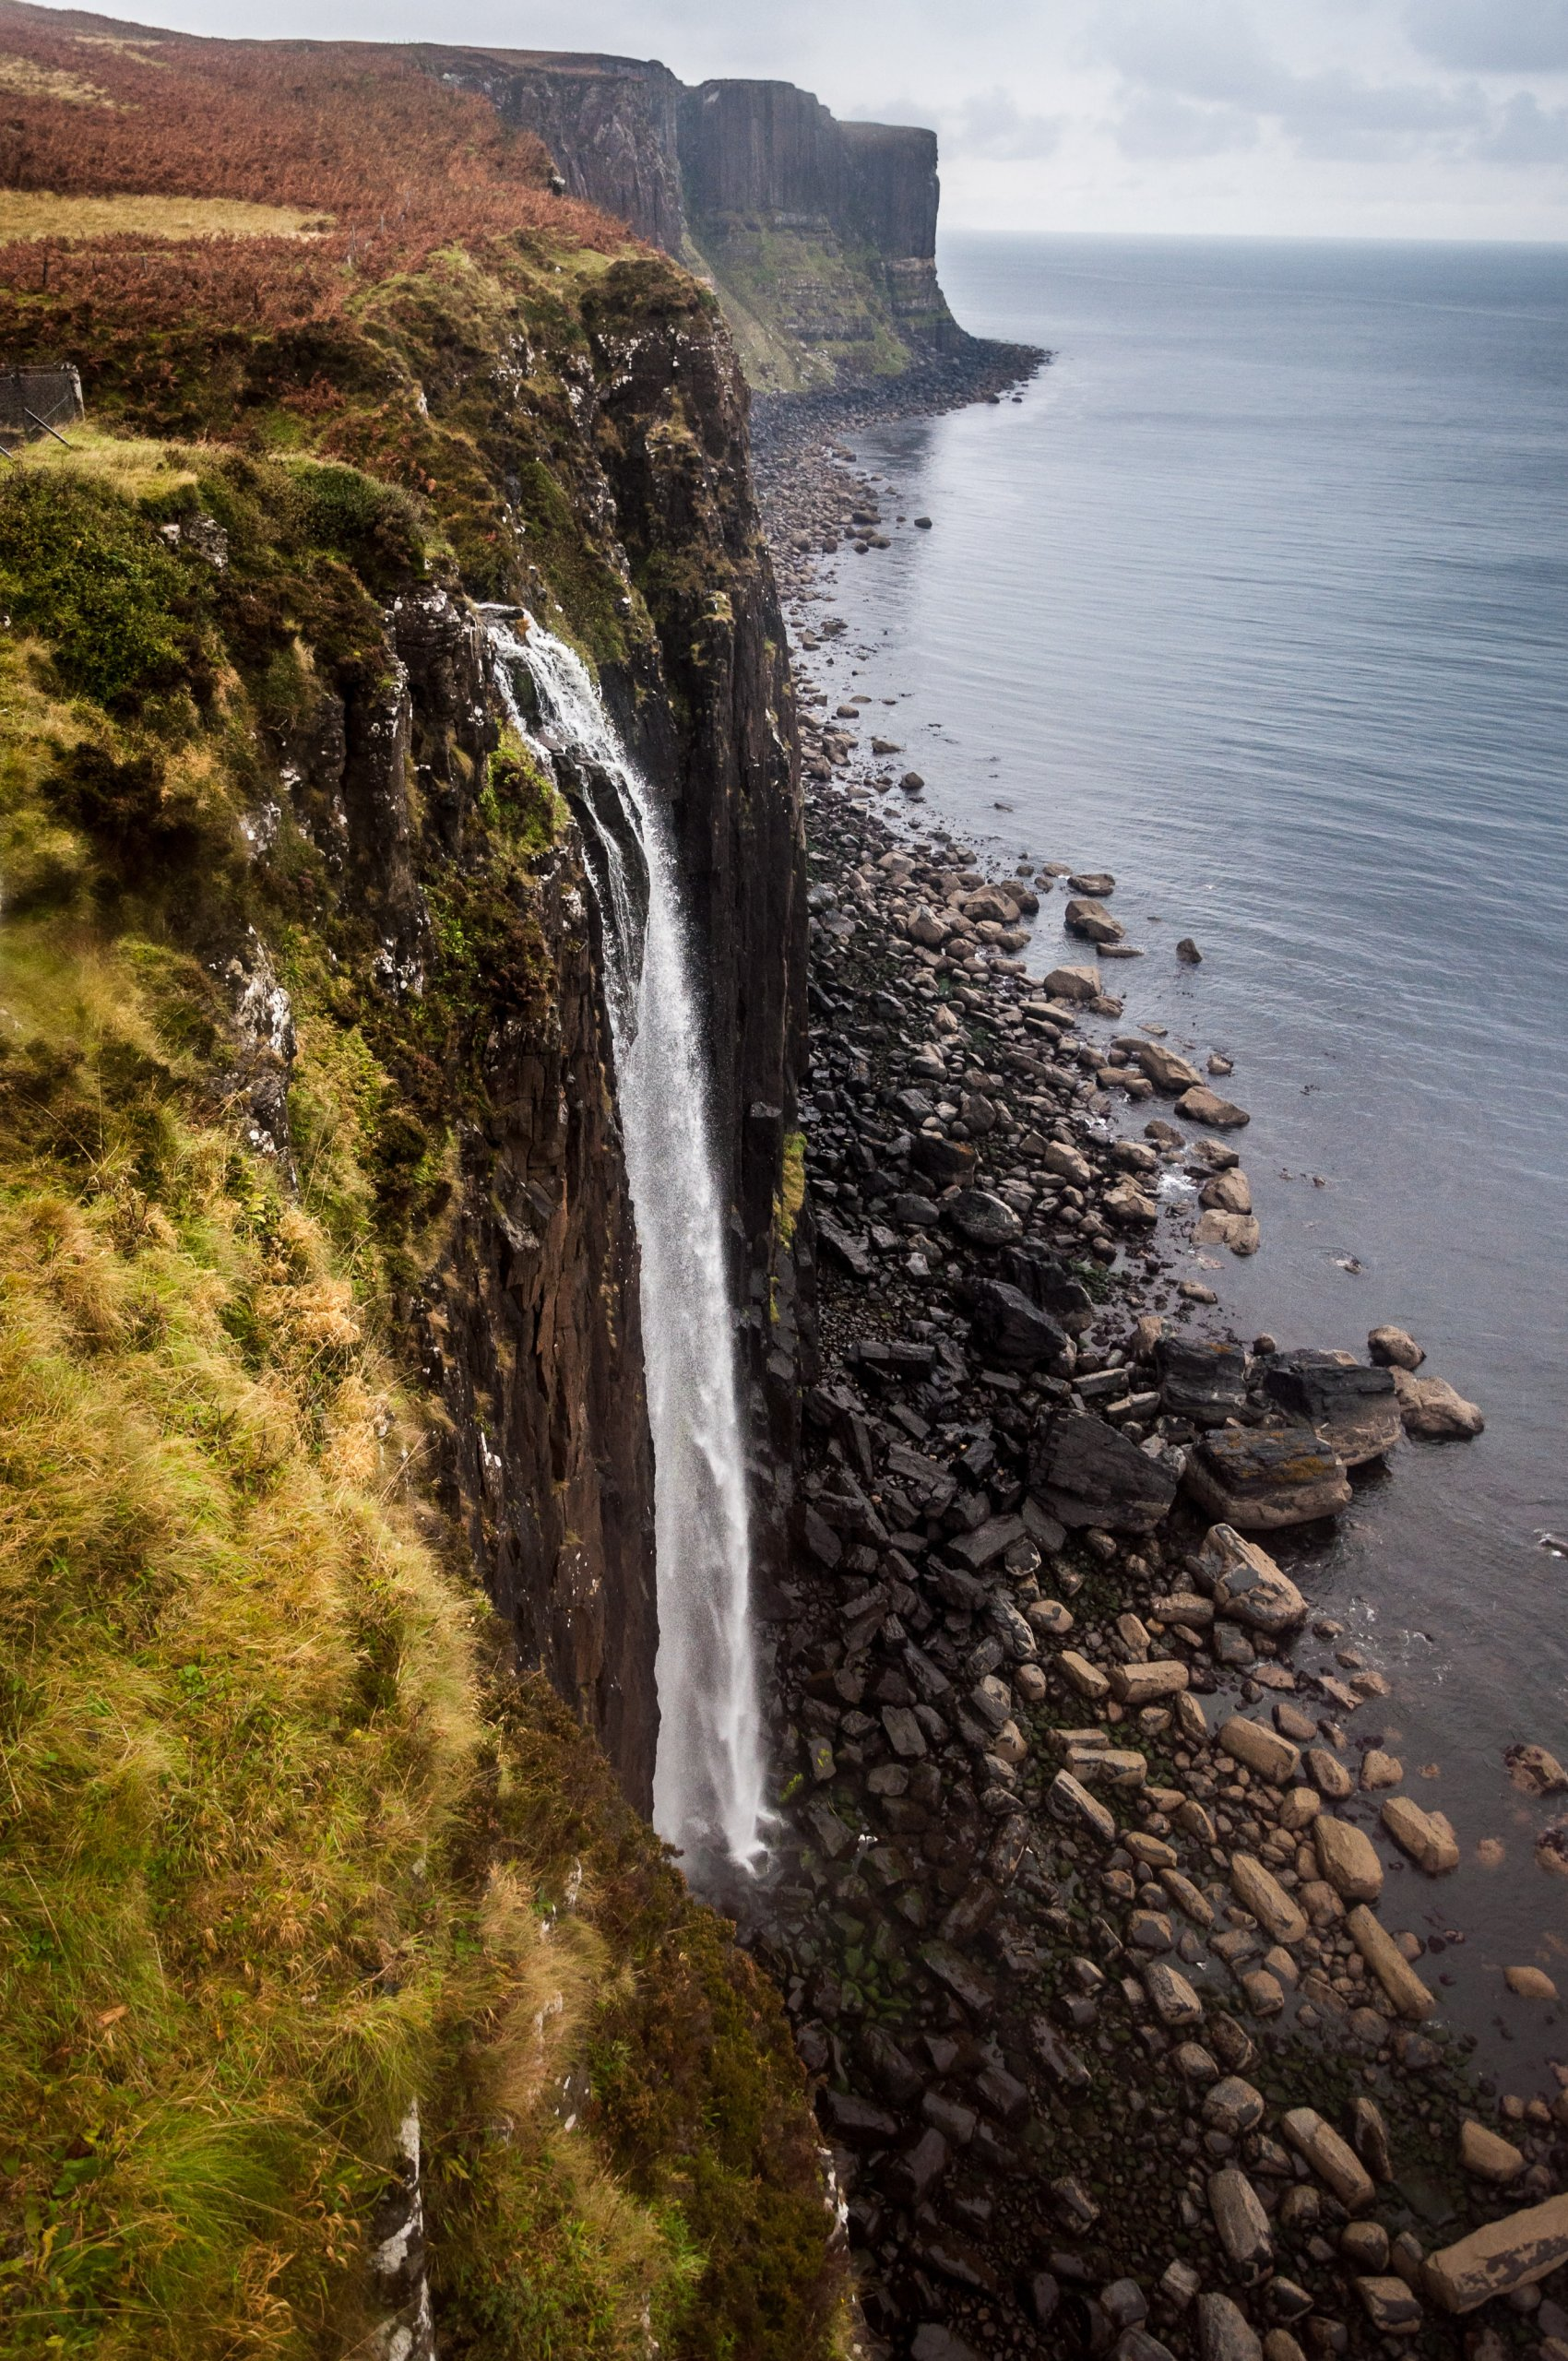 Portrait image of waterfall tumbling down cliff and meeting sea at the bottom